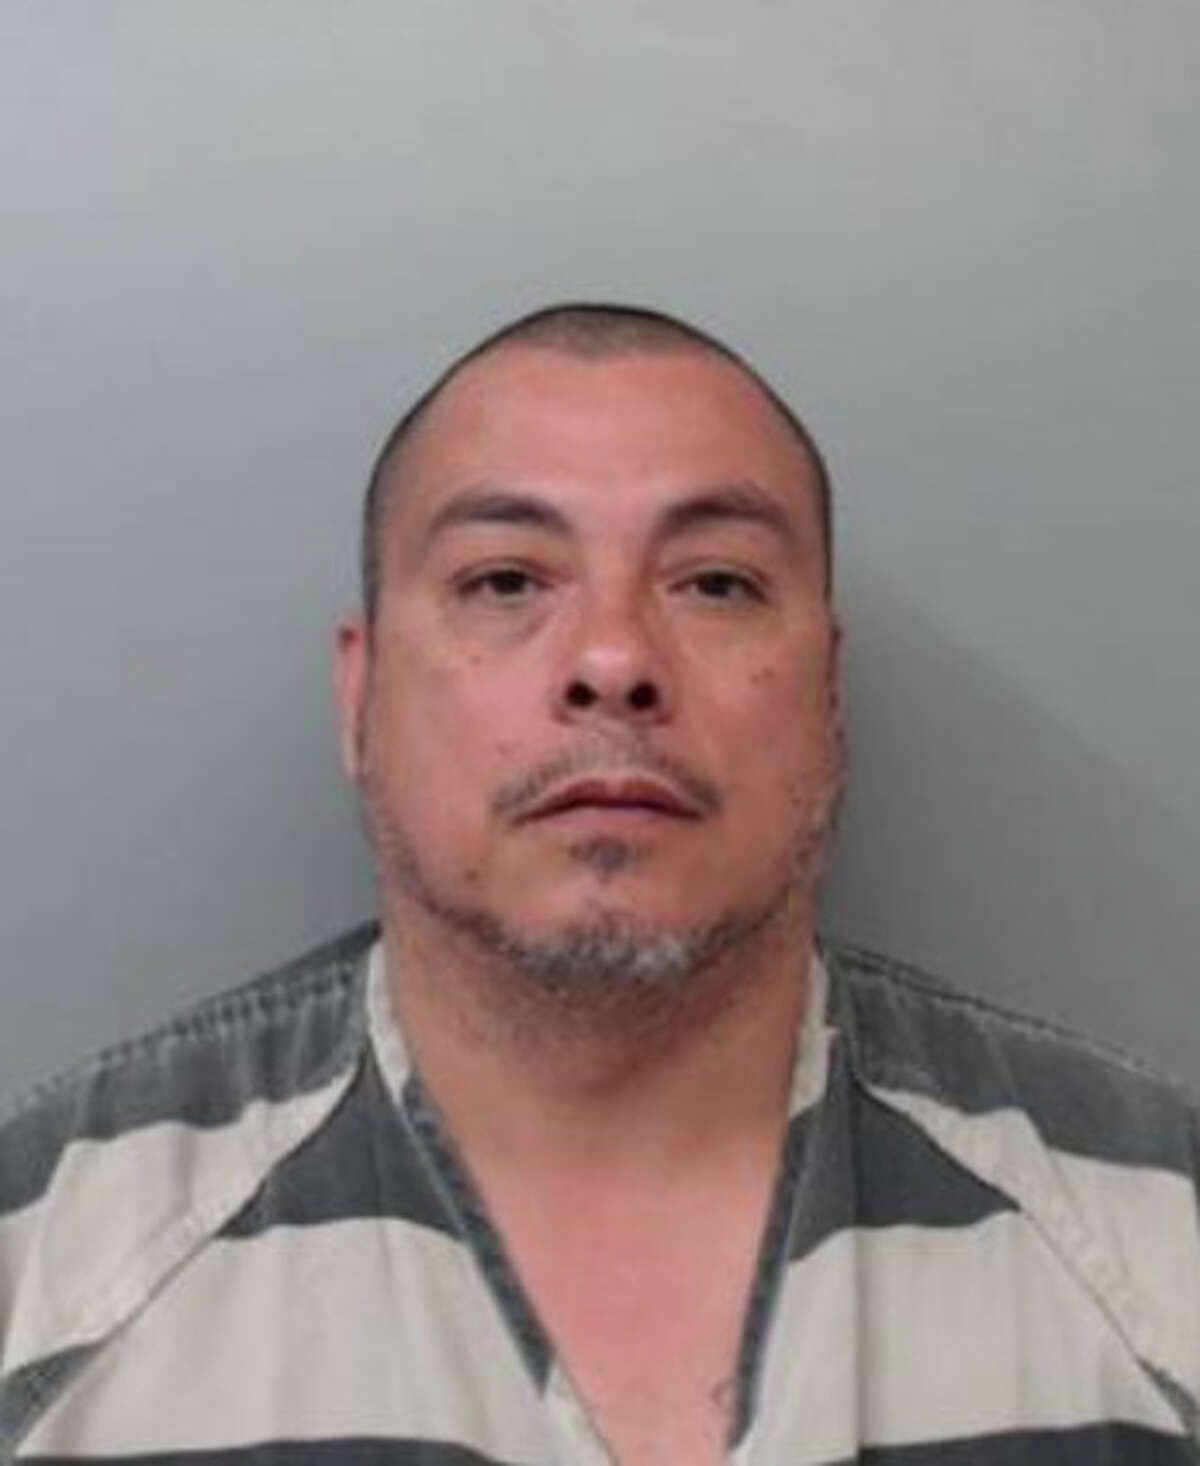 Mateo Gonzalo Arredondo, 44, was charged with theft from a human corpse.